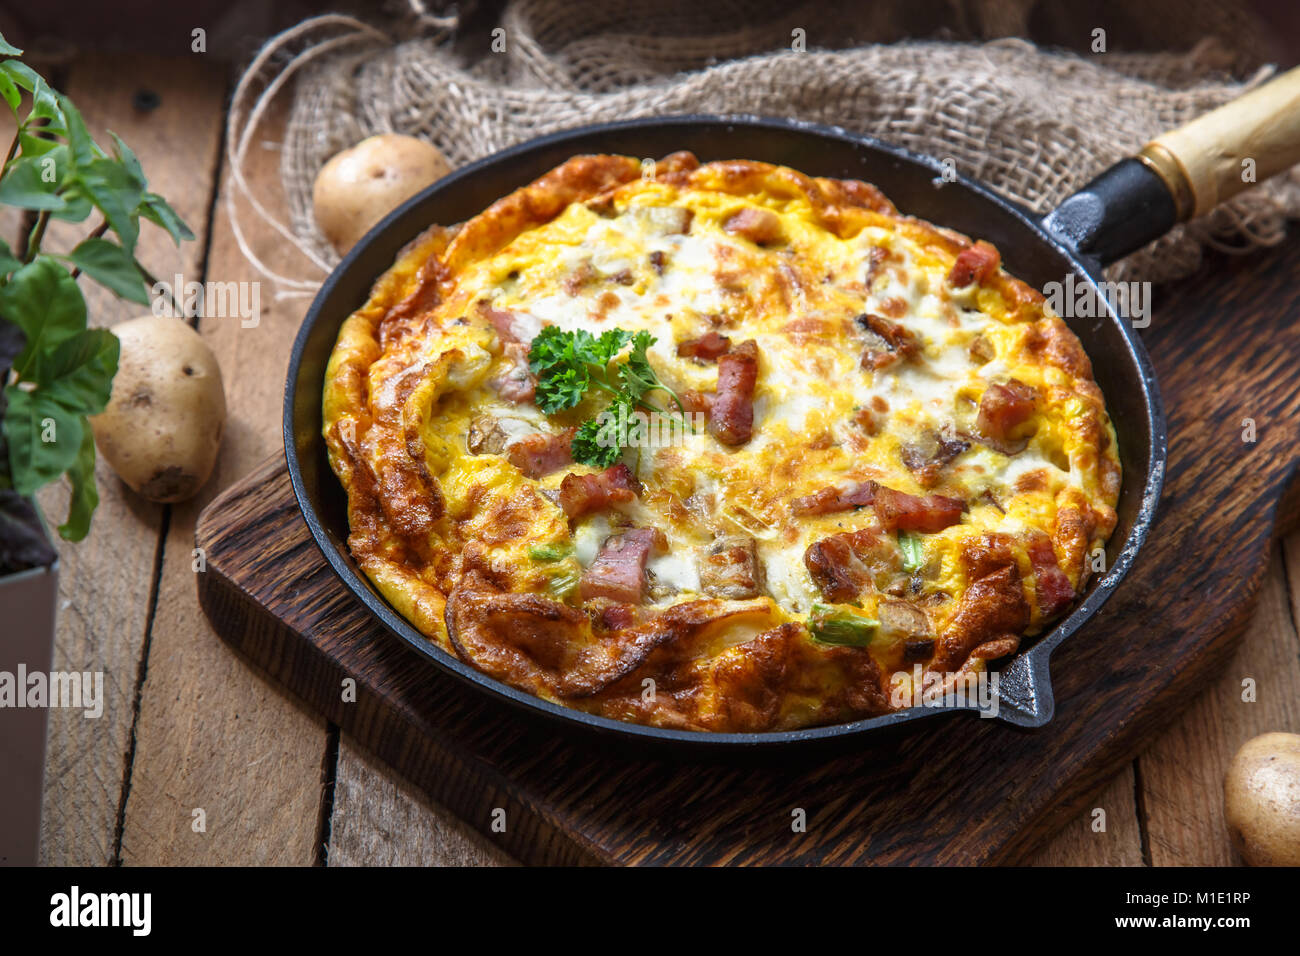 French omelette Savoyarde with bacon, cheese and leeks in fry pan, rustic - Stock Image